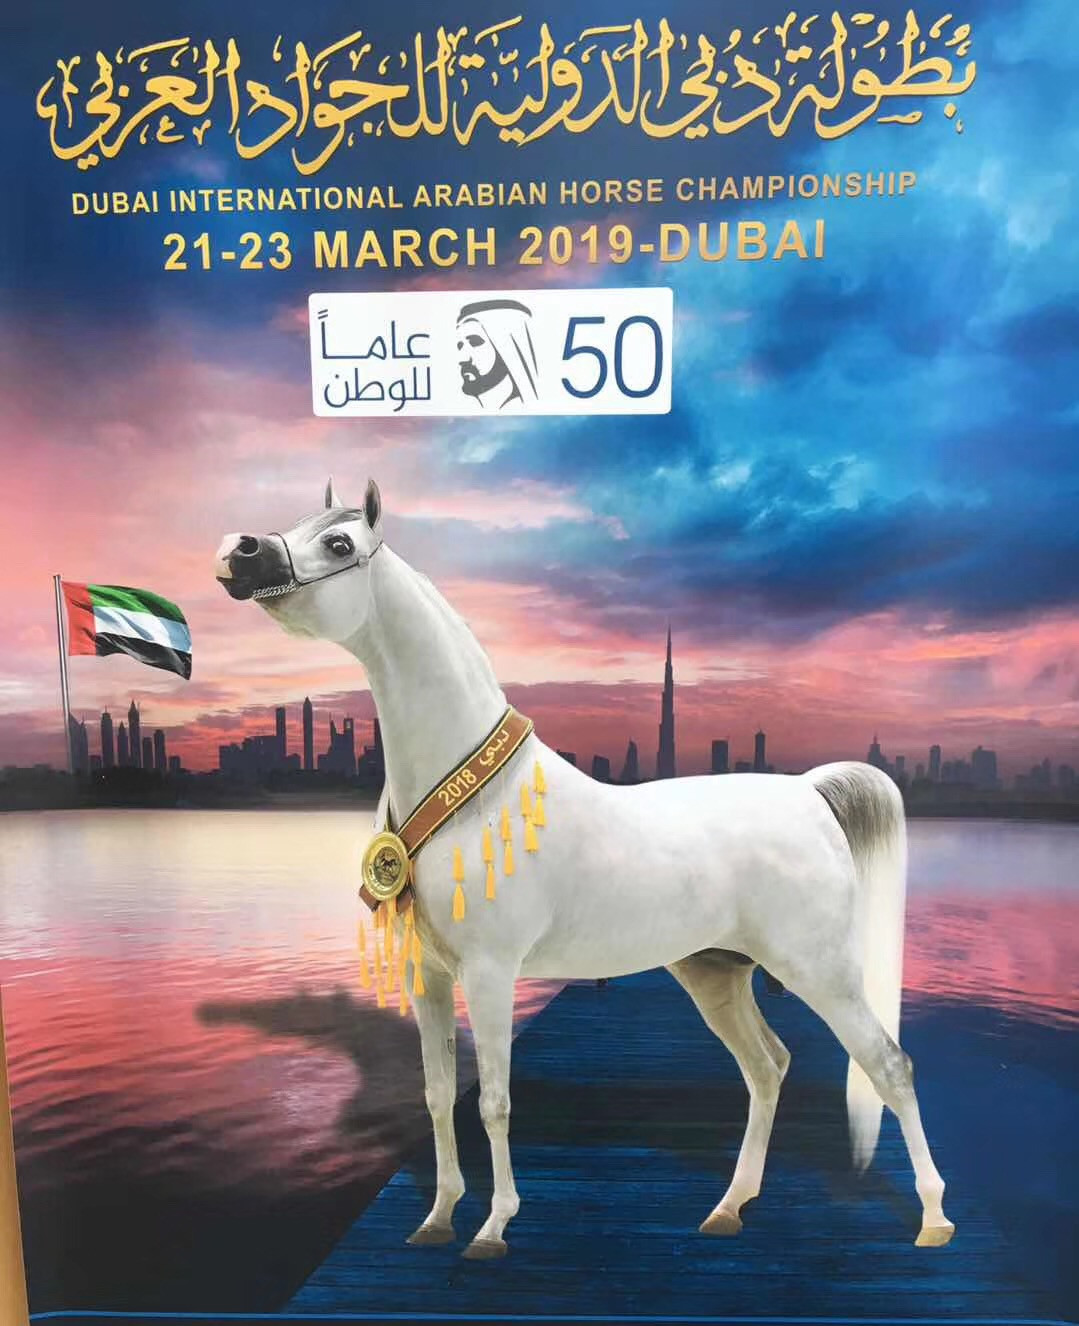 ENERPAT IN DUBAI INTERNATIONAL ARABIAN HORSE CHAMPIONSHIP (21-23 MARCH 2019)